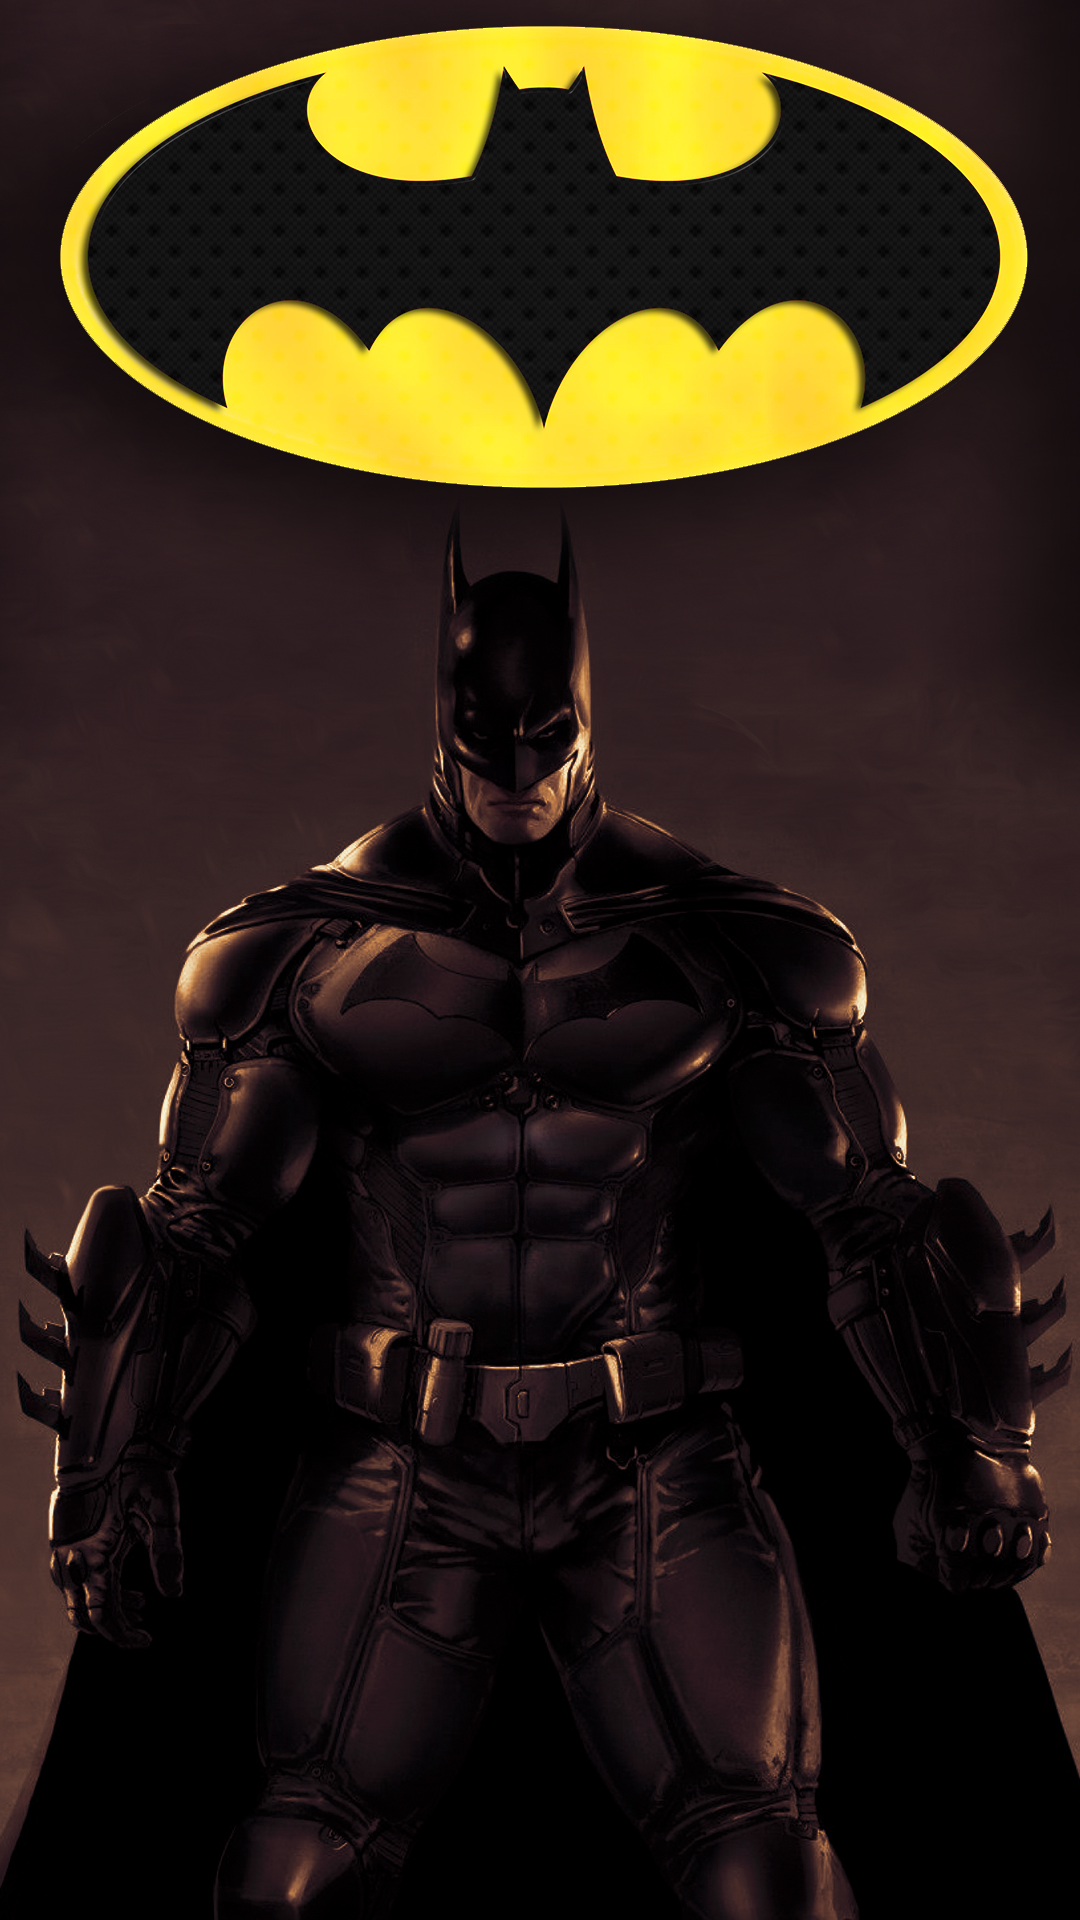 Ultra Hd Limited Edition Batman Wallpaper For Your Mobile Phone 0448